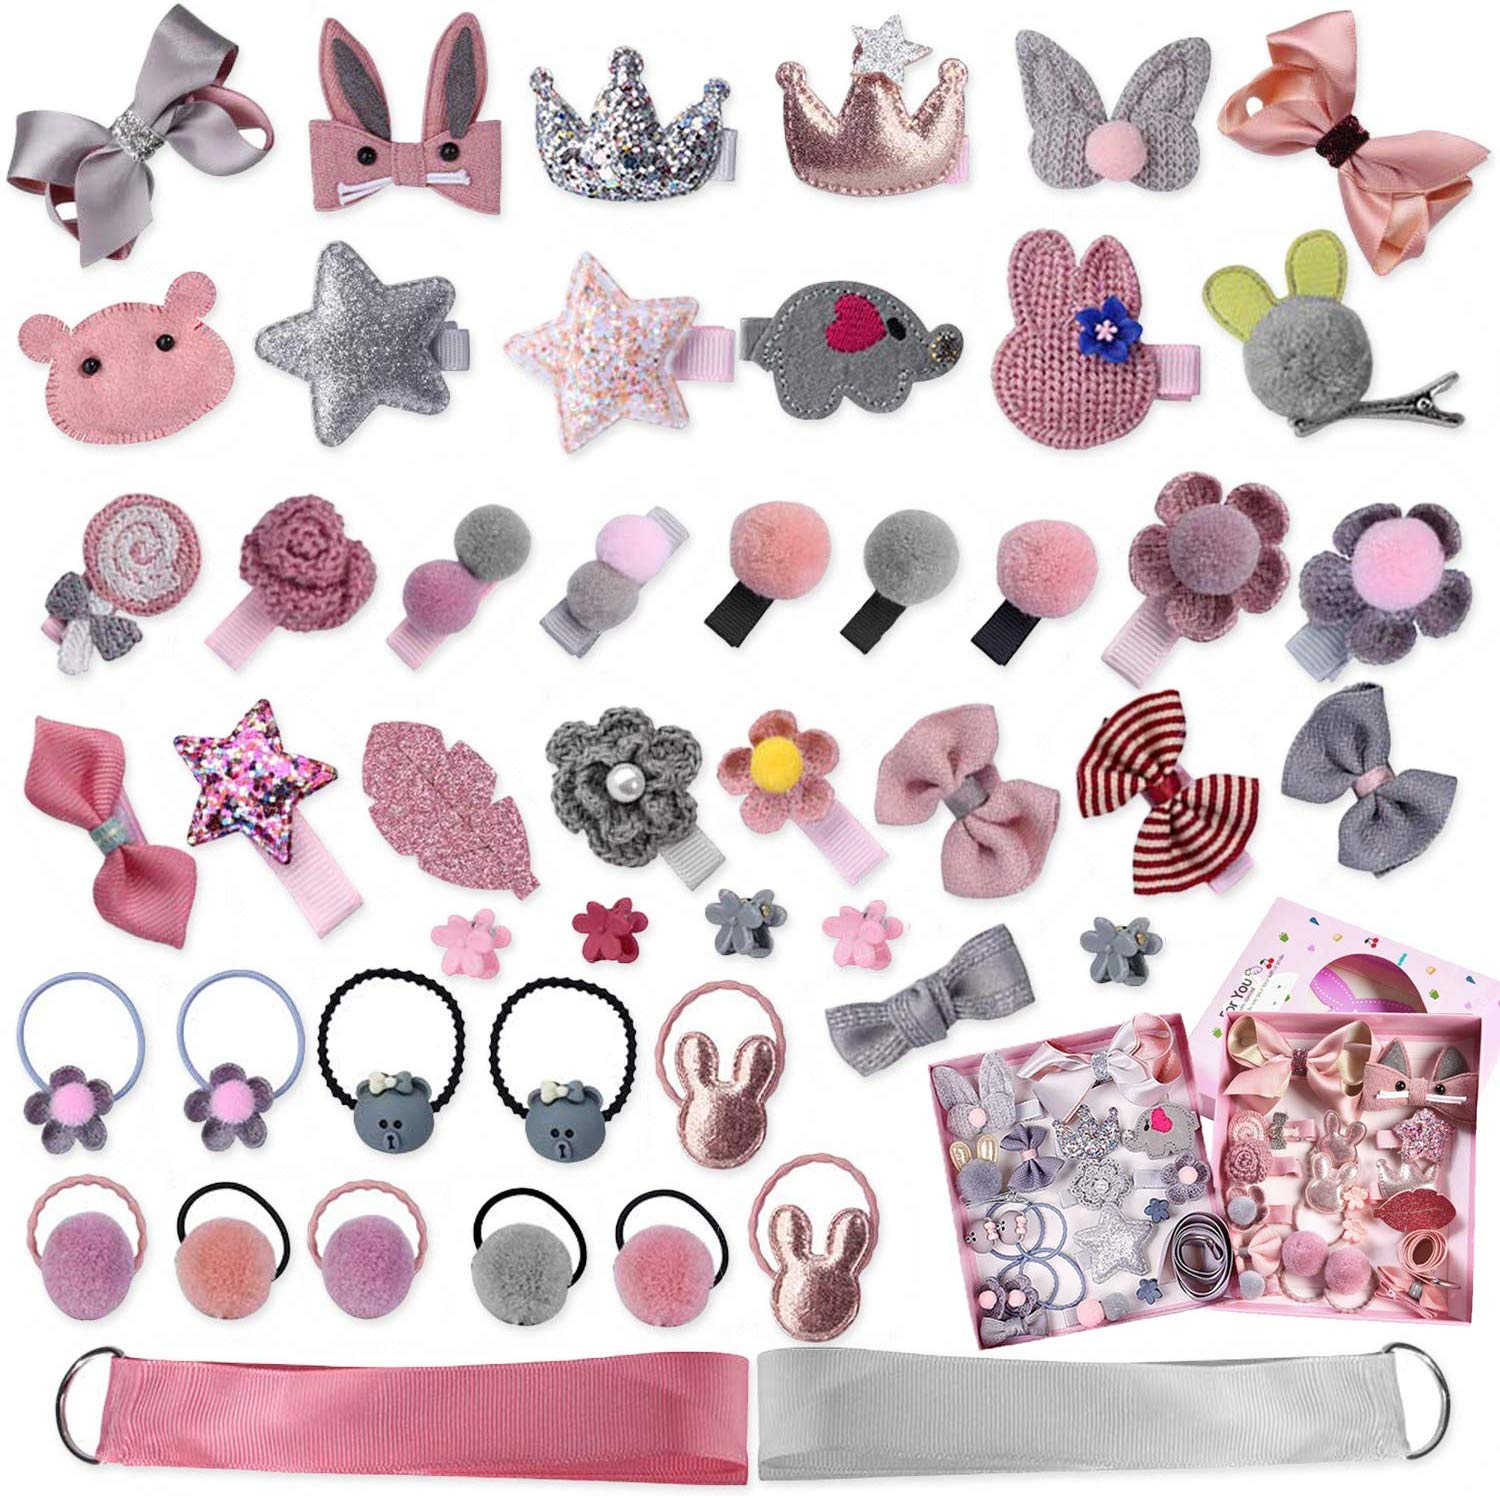 36 PCS Hair Clips Set for Little Girls Hair Rops Barrettes Baby Girls Hair Accessories Gift Set Hairpins Bows Ties Toddlers Barrettes Head Ornaments Set for Birthday Children's Day Gift